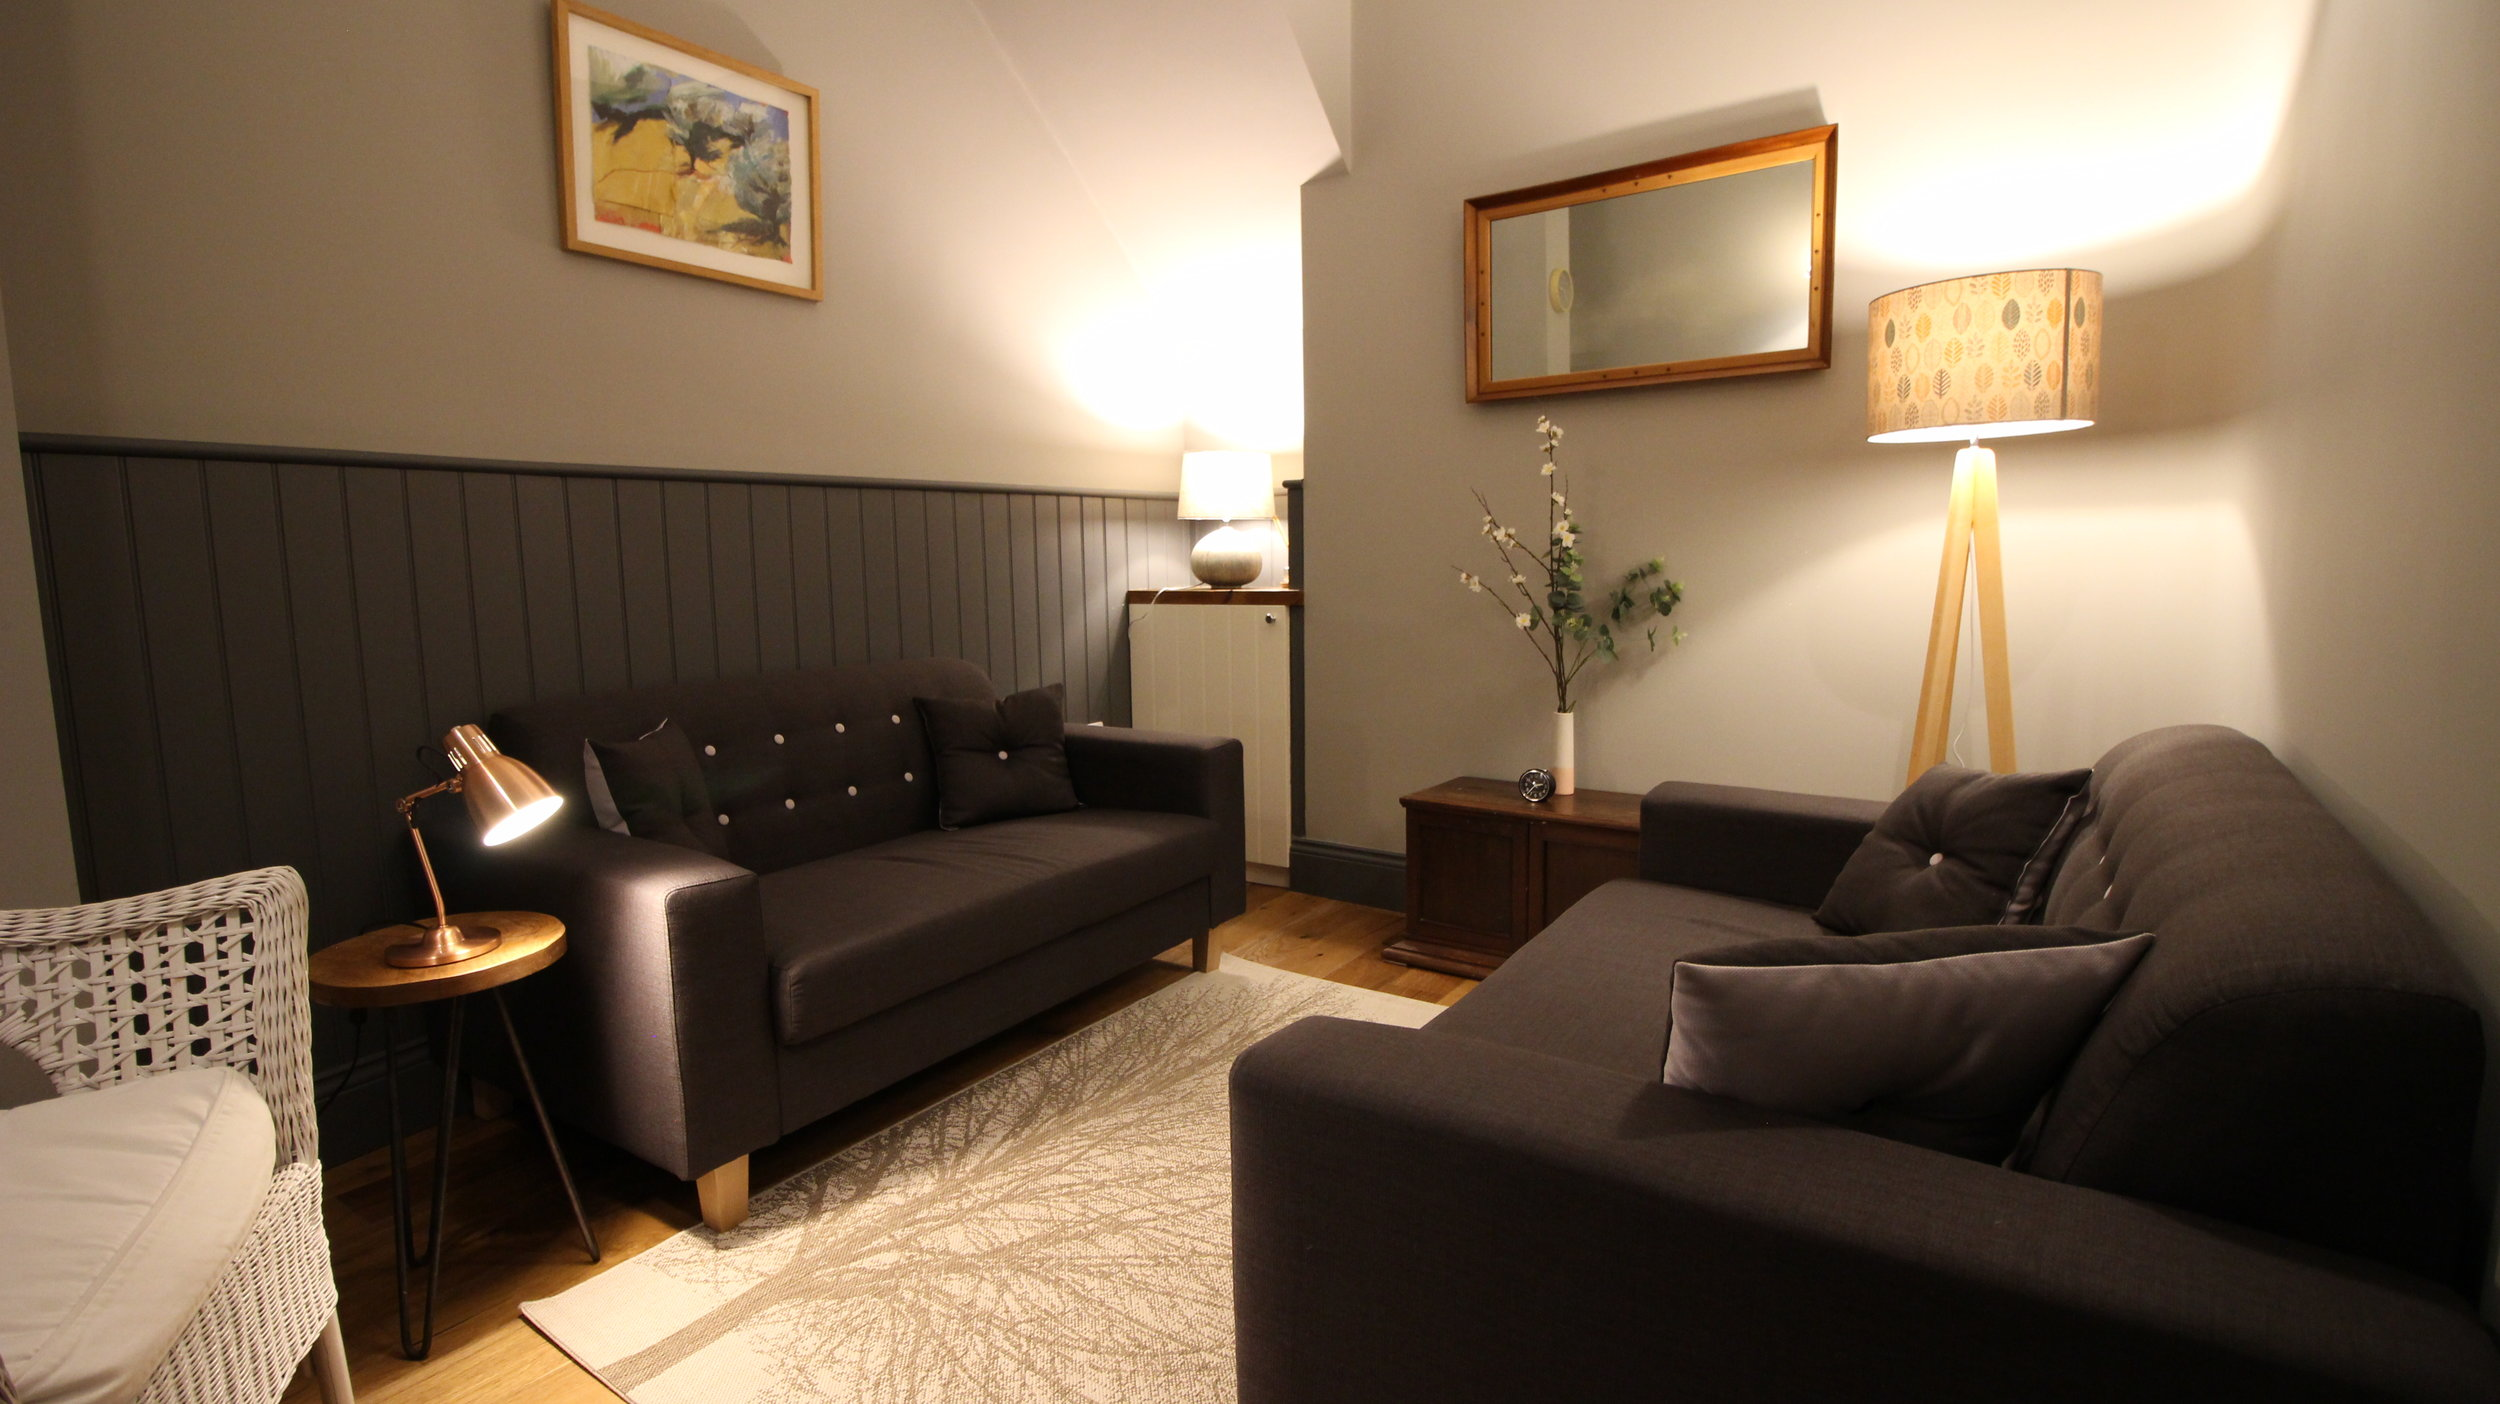 Den - A room with high ceilings and lovely ambient lighting options, the Den has two sofas, an armchair and the option to add chairs, this room is suitable for work with couples or small groups of 5/6 people.